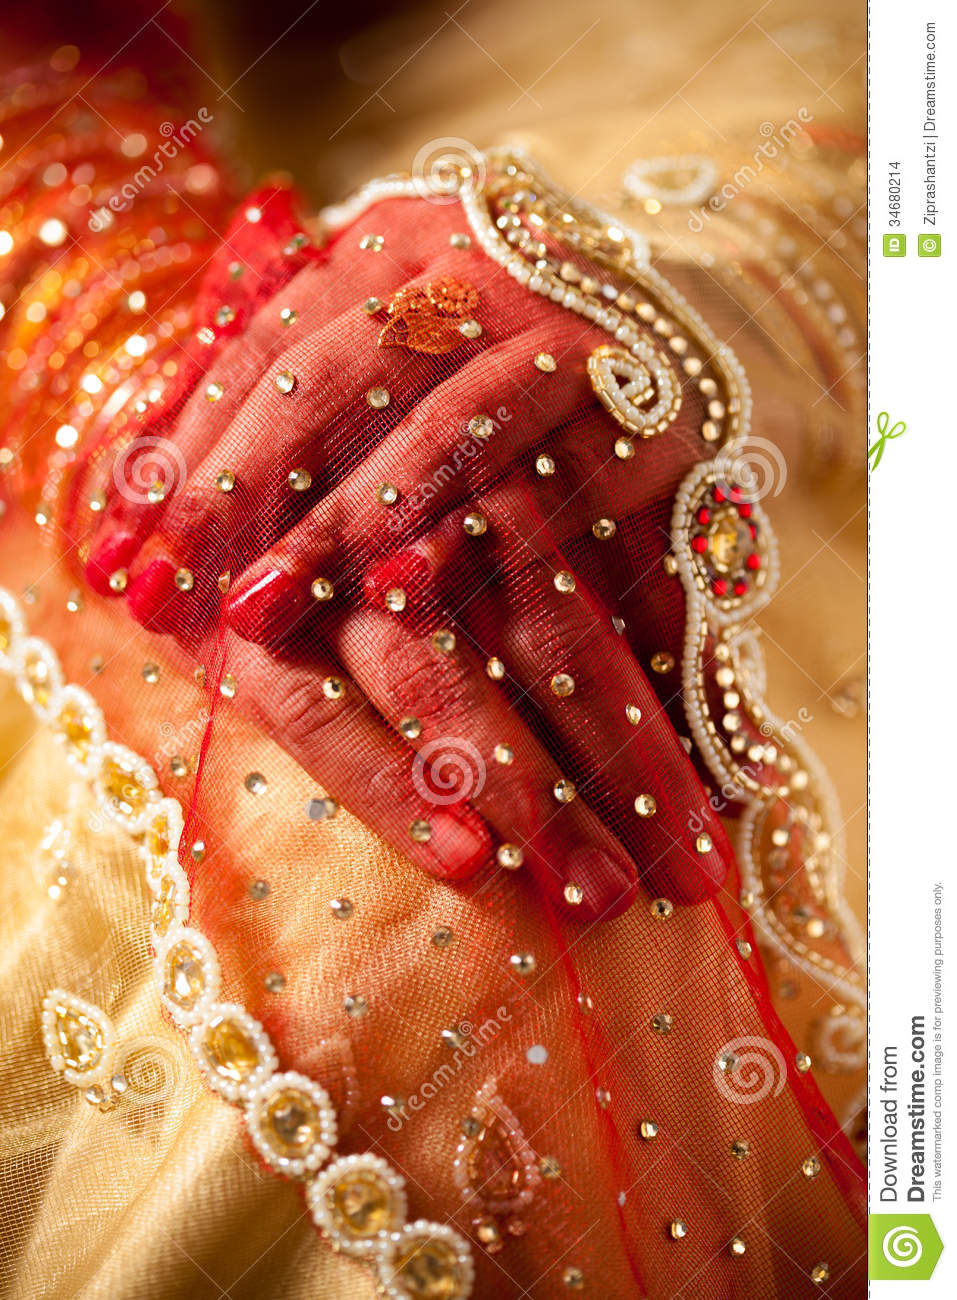 Decorative hand of bride stock photo. Image of tradition - 34680214